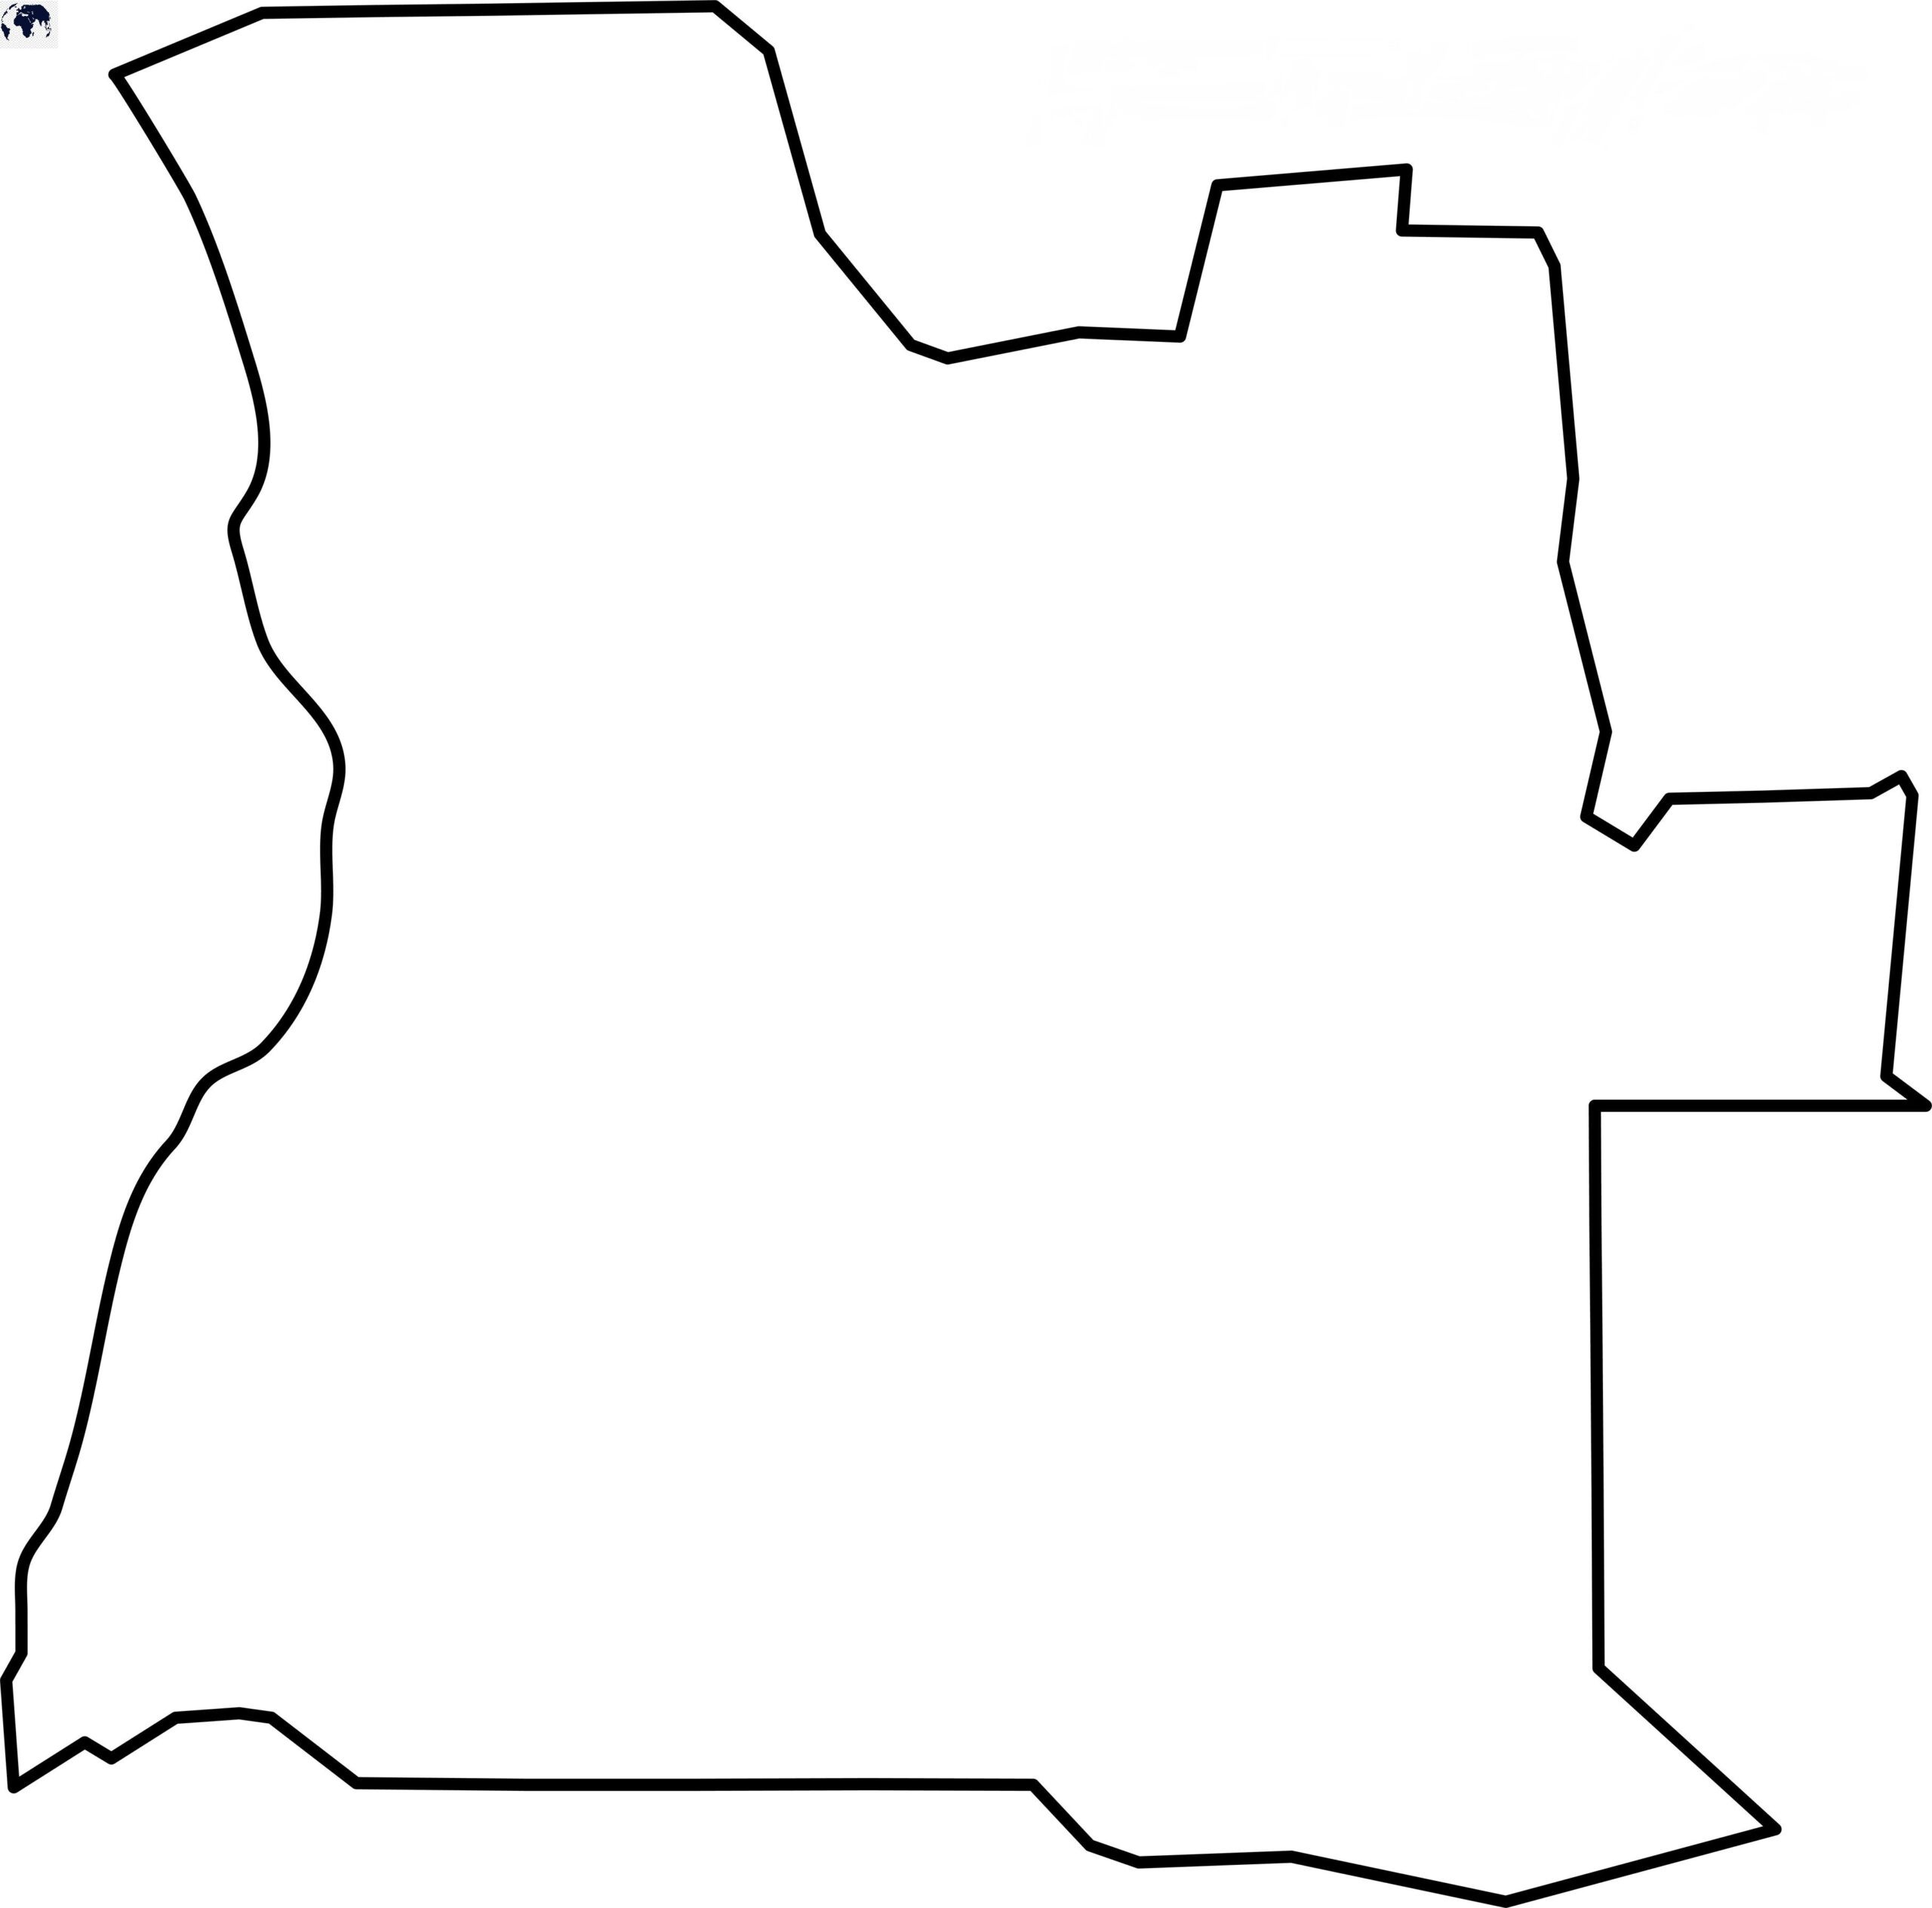 Blank Map of Angola - Outline